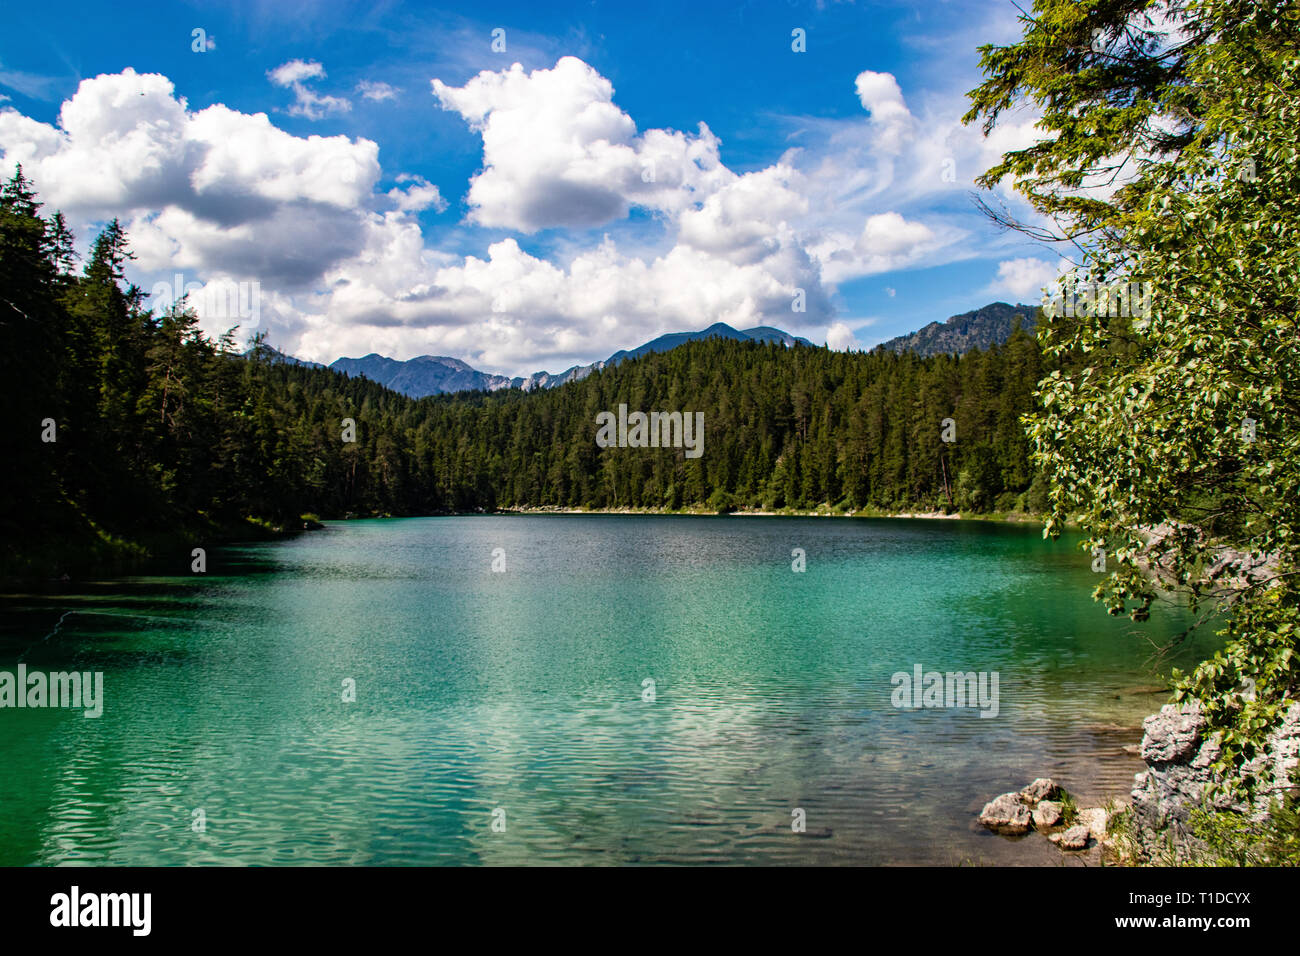 Azure water at Eibsee lake at the foot of Mt. Zugspitze. Location famous resort Garmisch-Partenkirchen, Bavarian alp, Europe. Scenic image of popular  - Stock Image